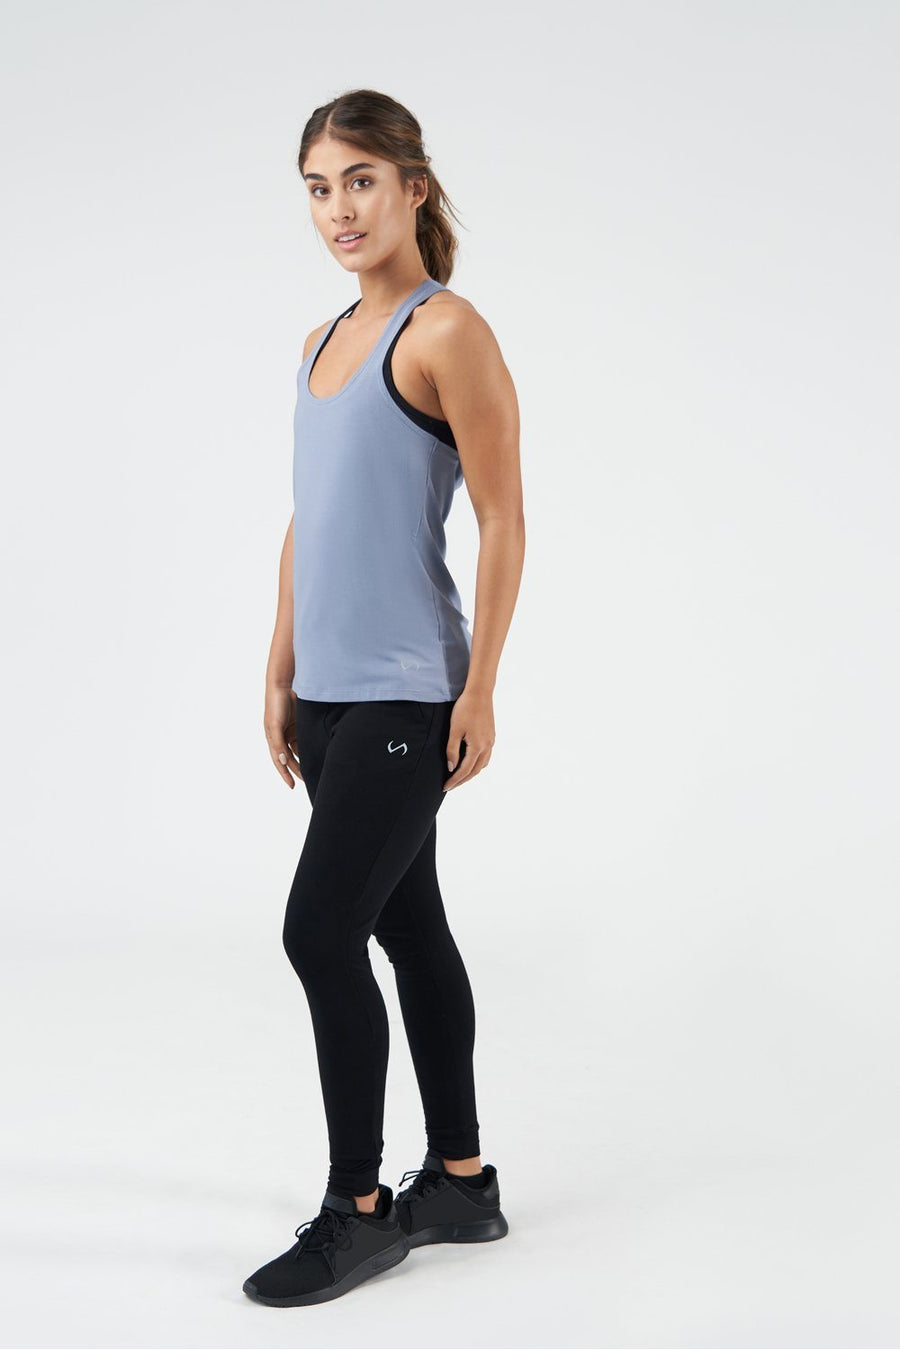 TLF All-Day Ease Racerback Tank - Titanium